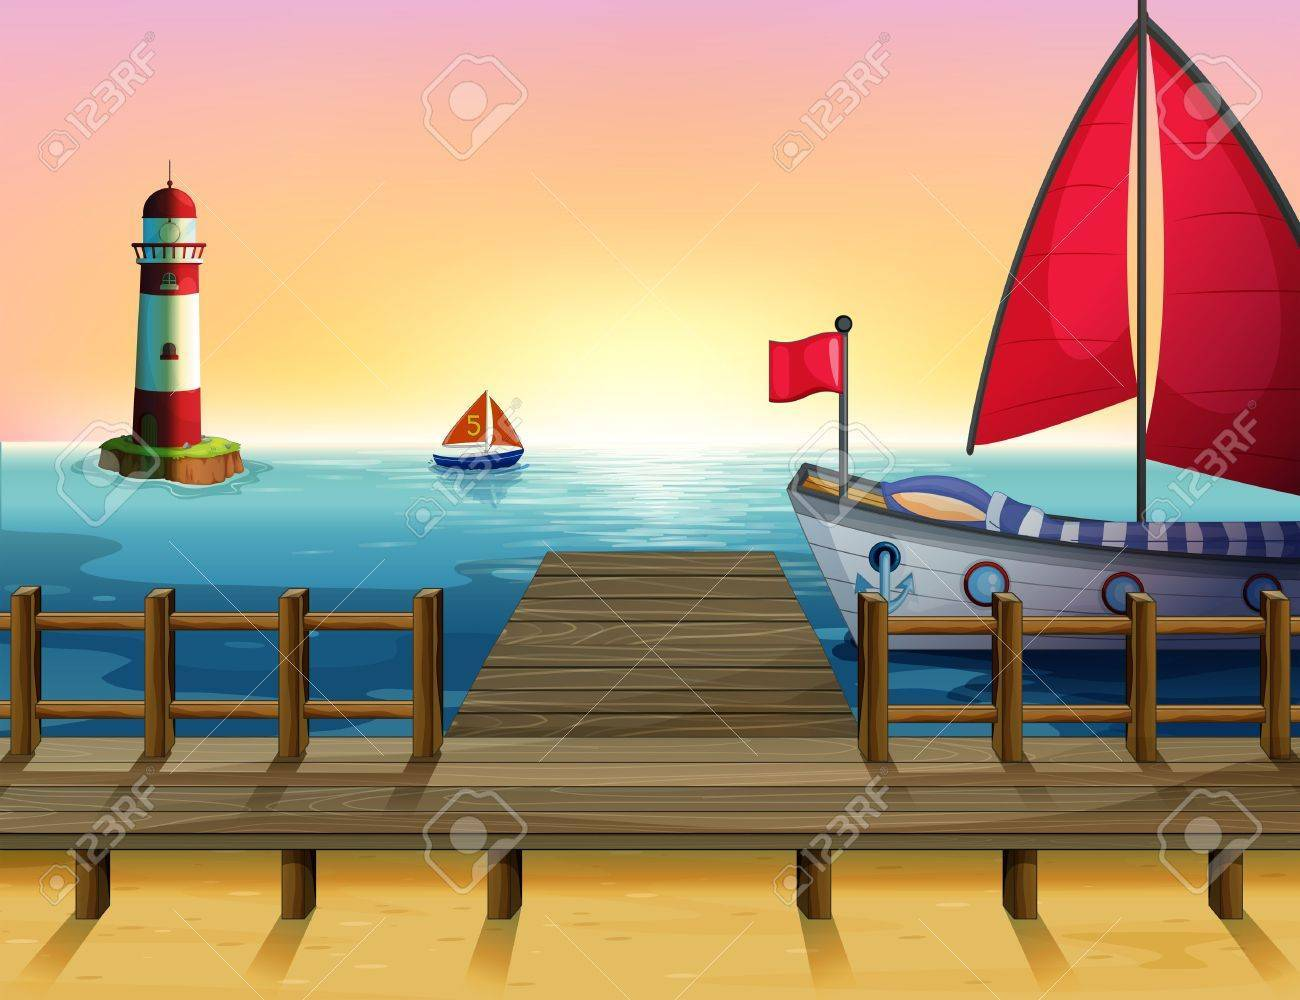 Seaport clipart jpg transparent library Seaport clipart 8 » Clipart Portal jpg transparent library